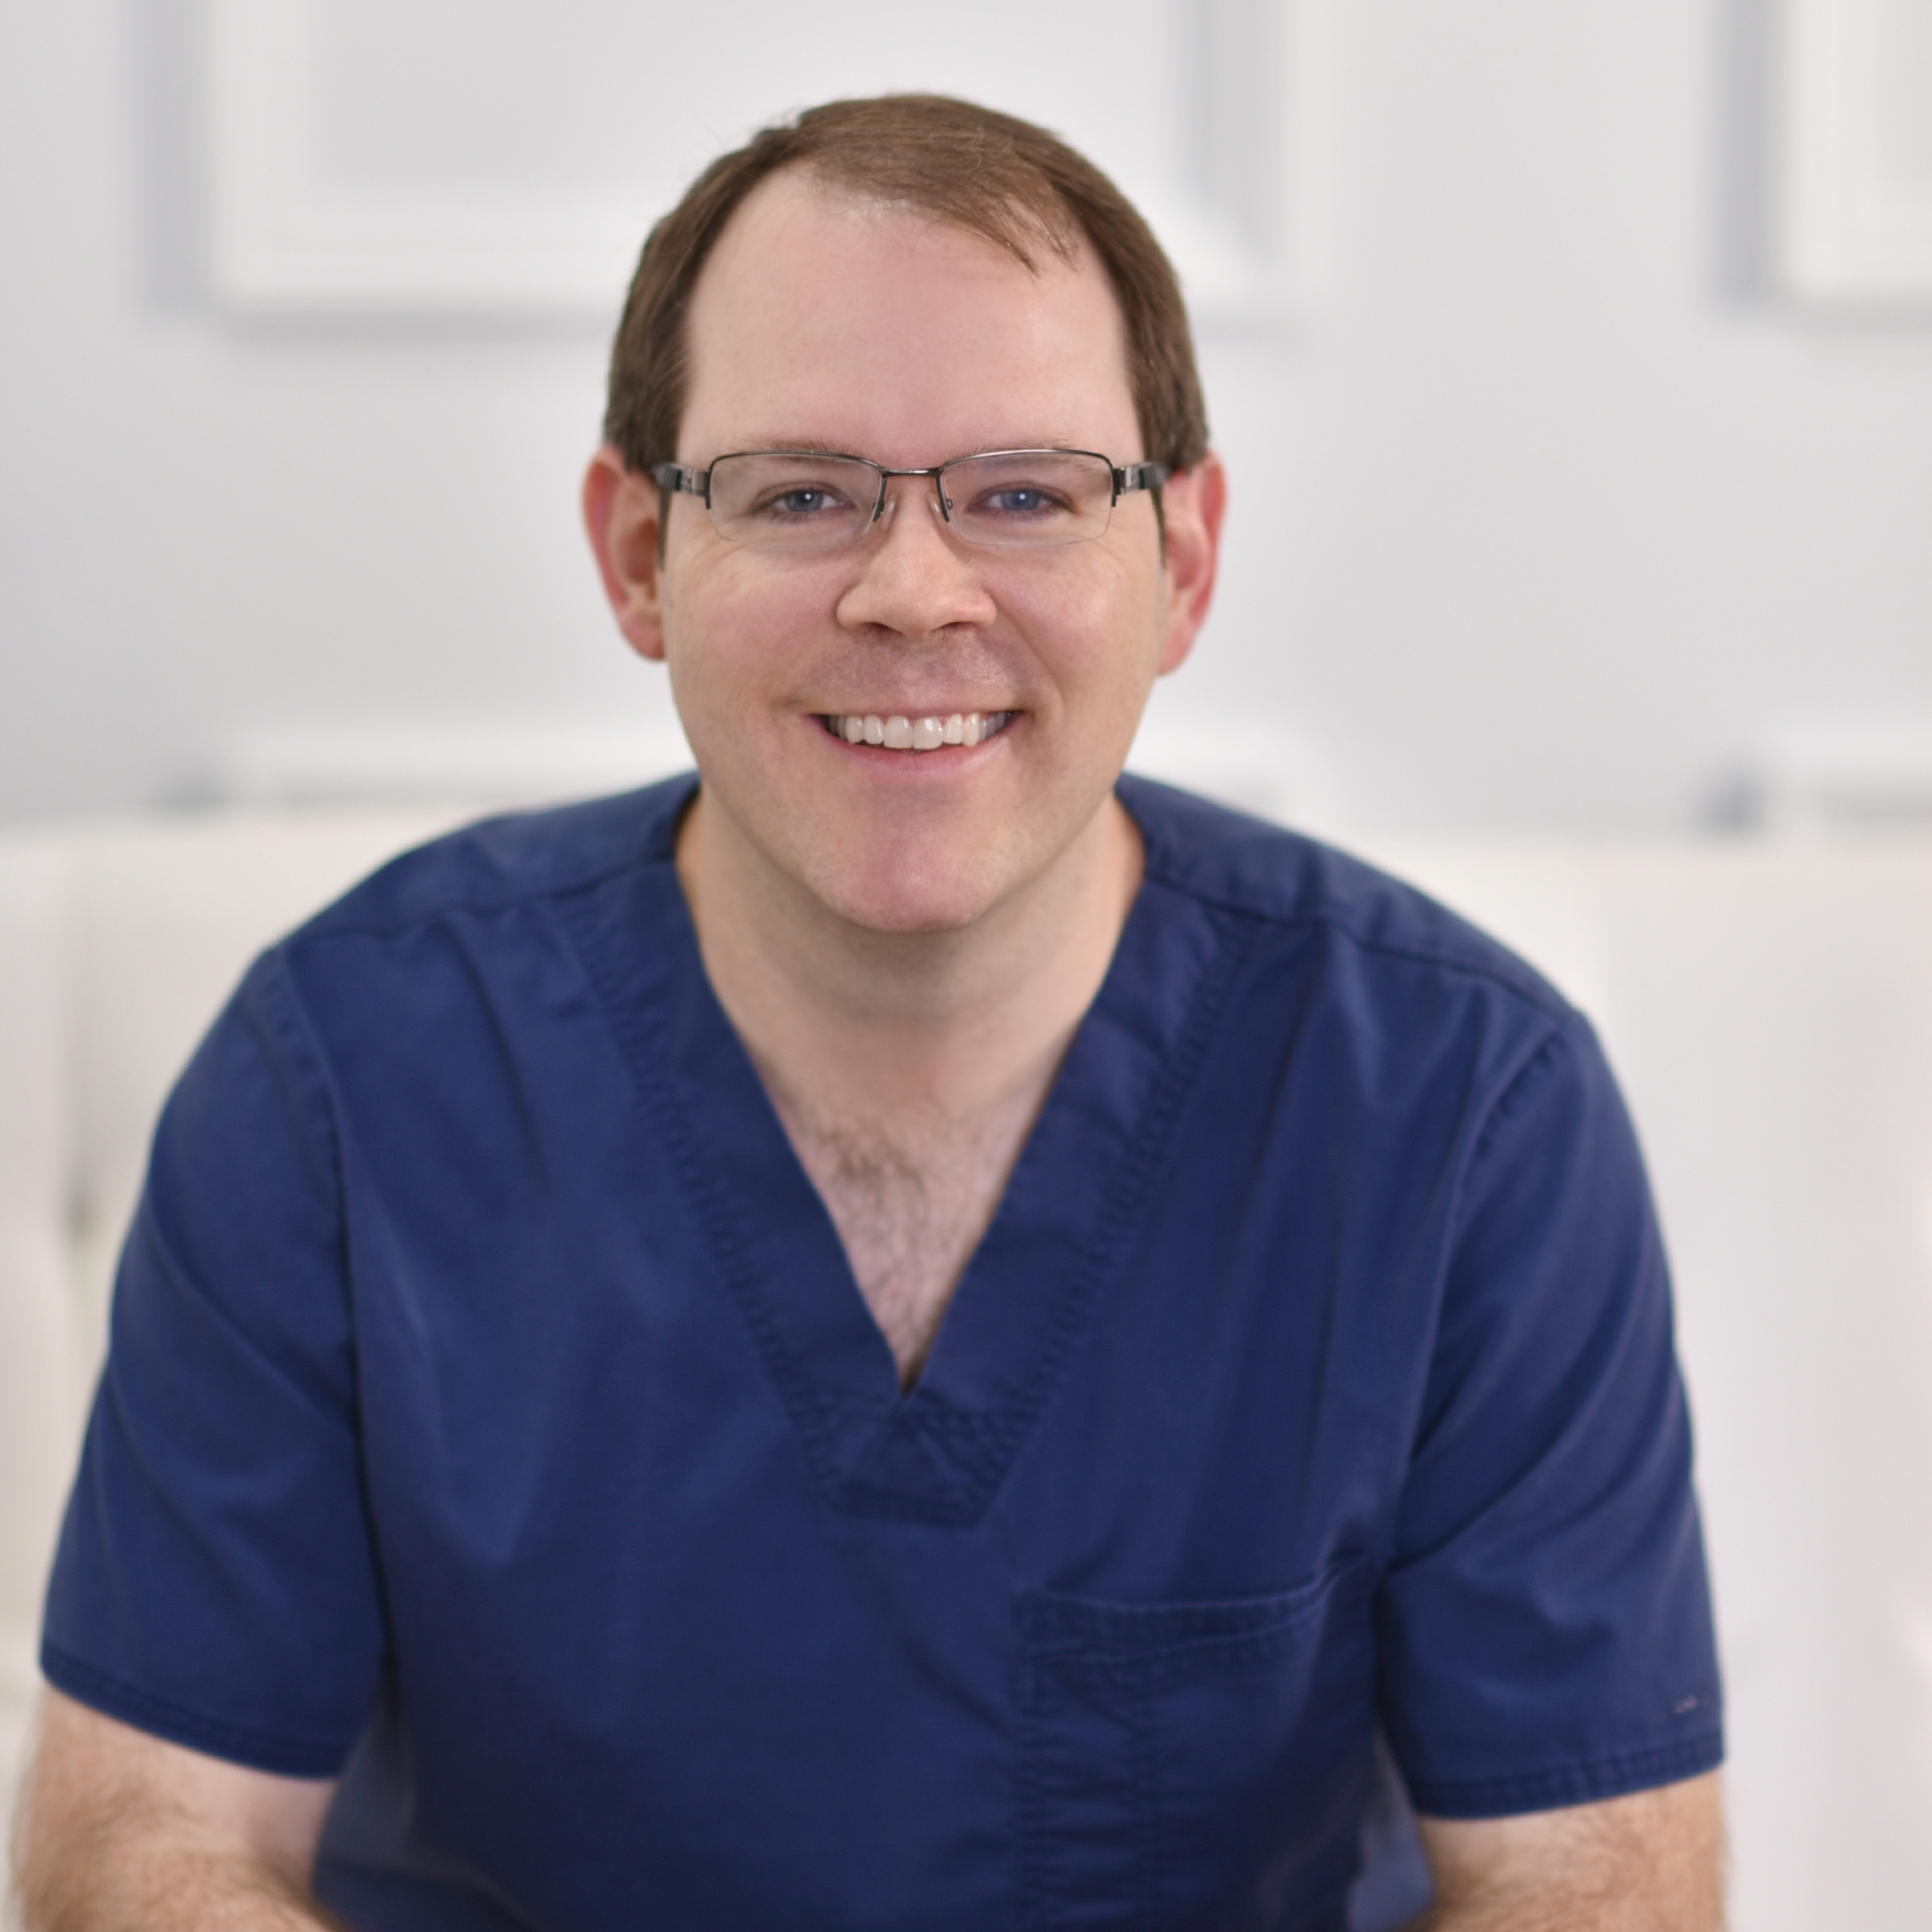 Brice Jackson - LMT/NMT ALABAMA LICENSE #3016Brice Jackson, LMT/NMT is a Licensed Massage Therapist and founder of BWM. He graduated from Red Mountain Institute in 2010 and earned his license as a massage therapist in 2011 (AL #3016). Since then he has worked as a massage therapist independently and as a practitioner at Legacy Chiropractic.Book with Brice